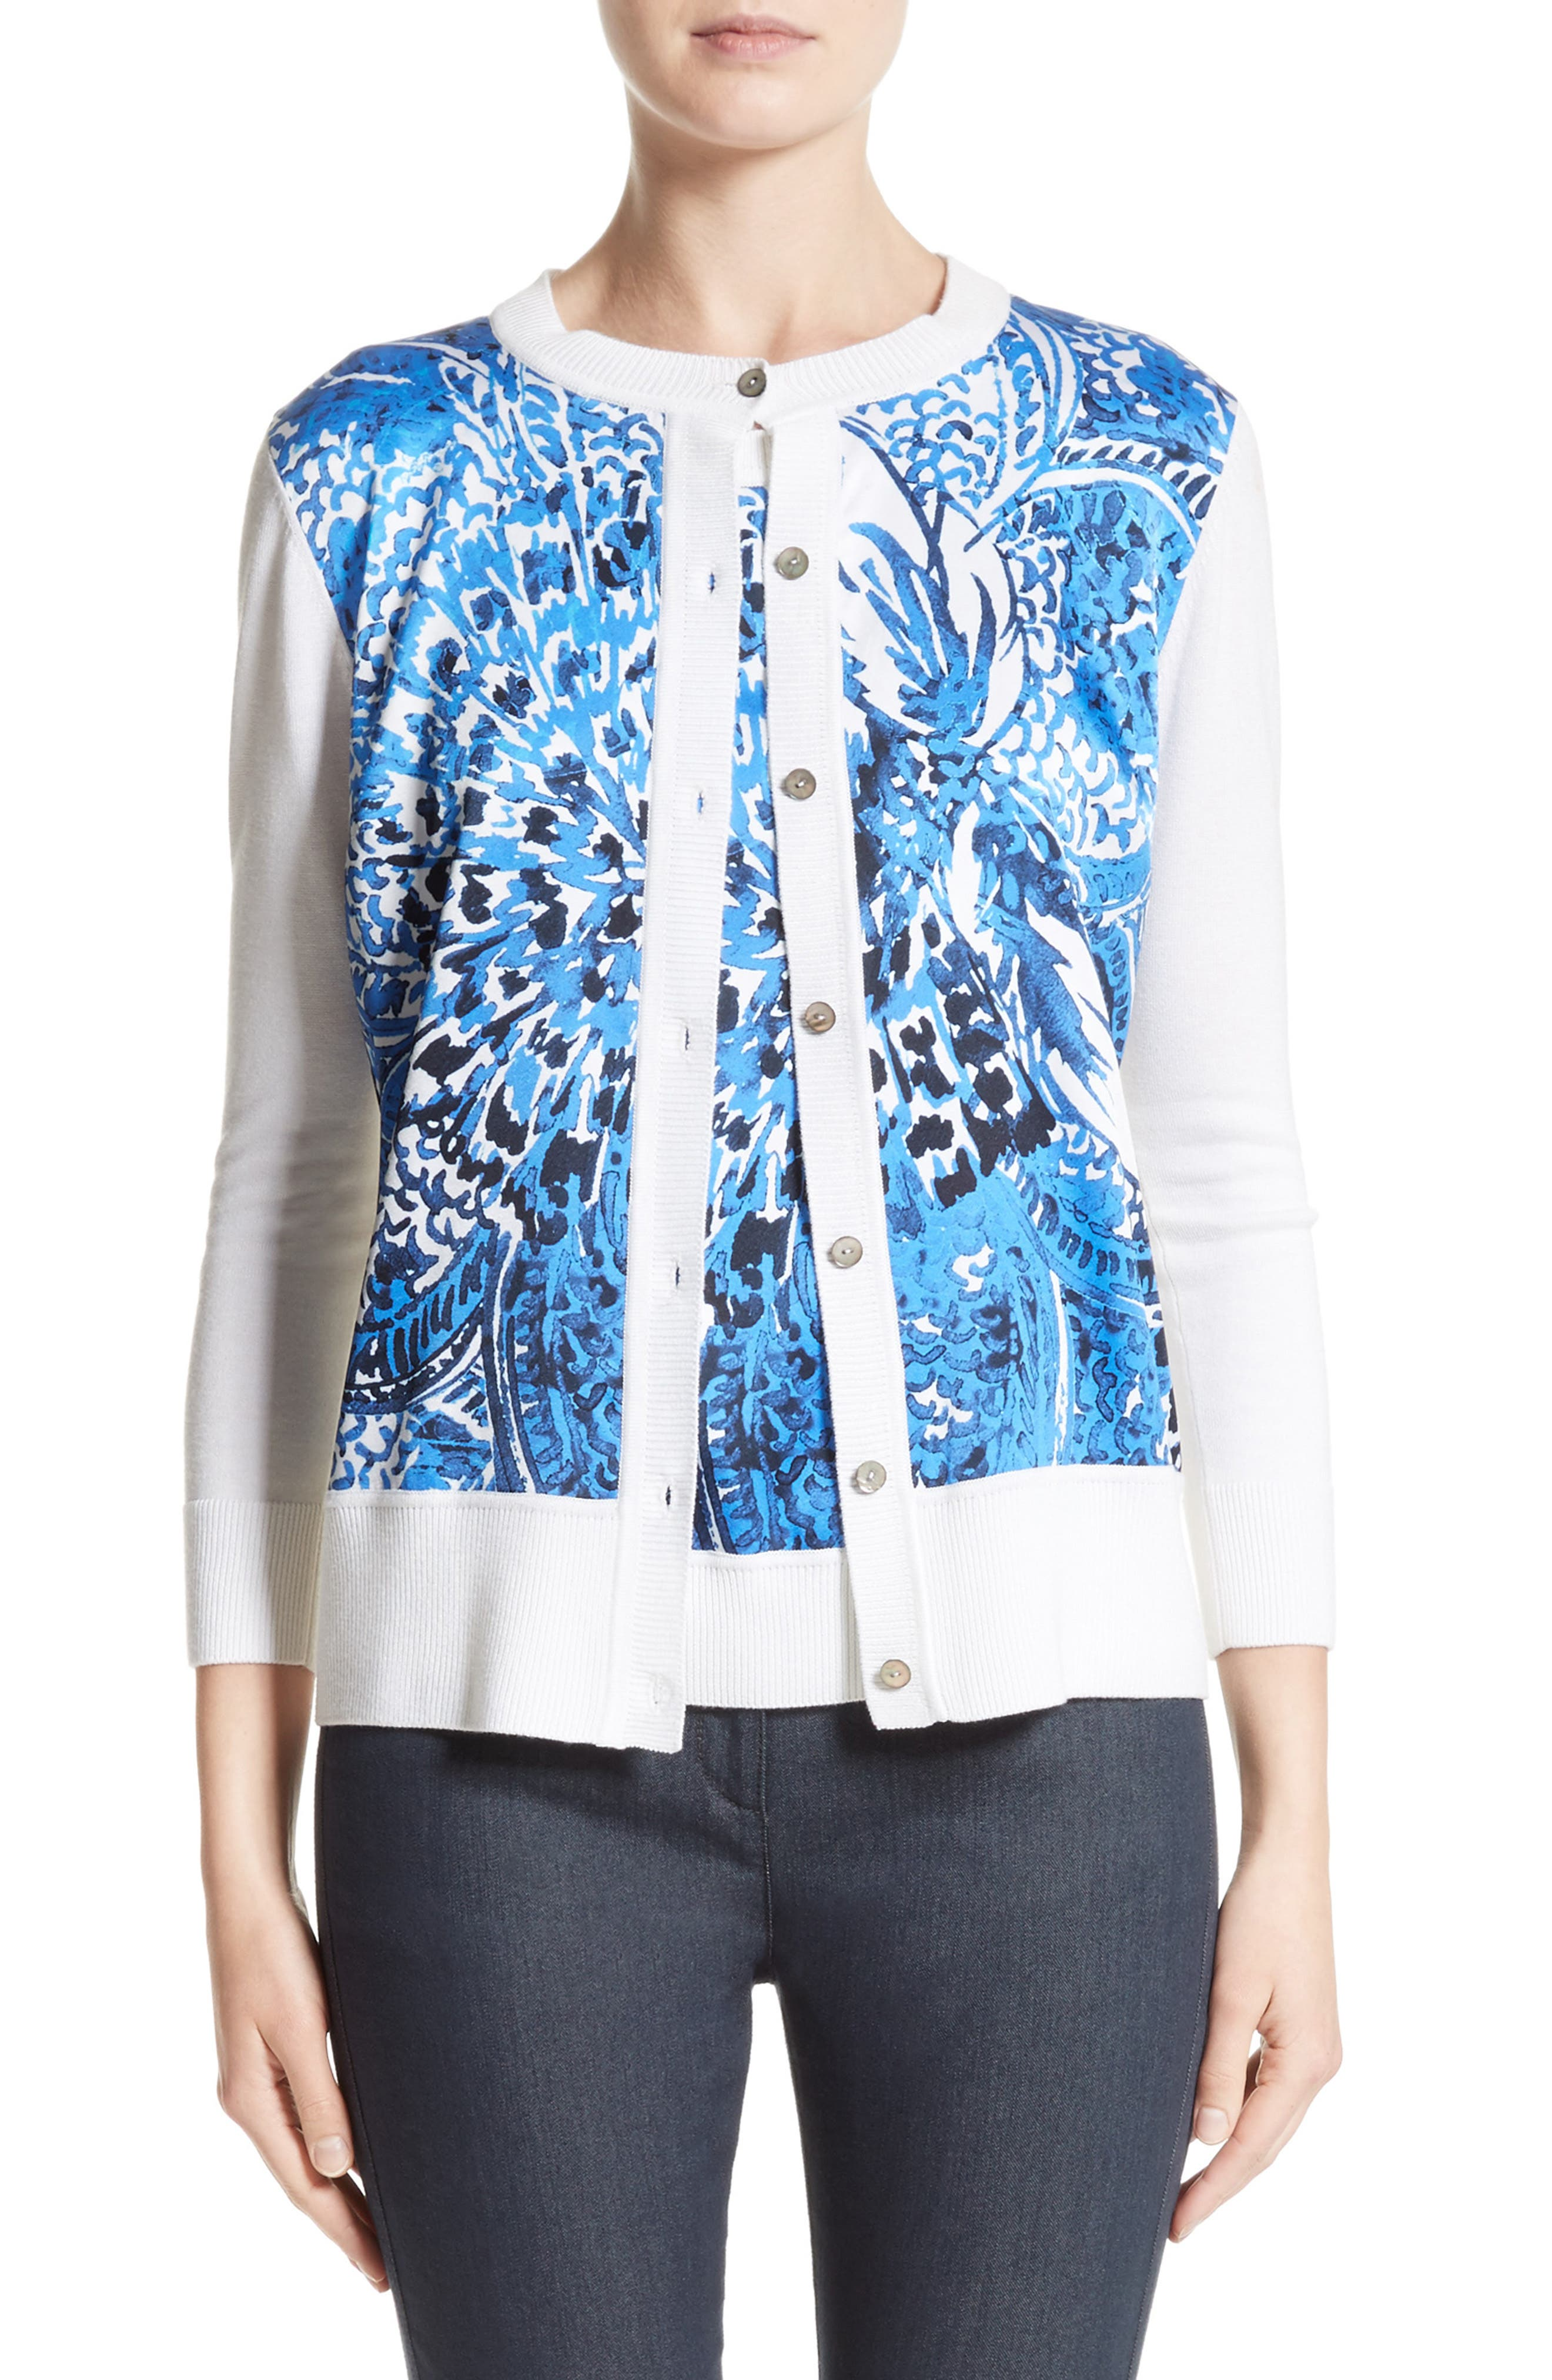 St. John Collection Lotus Blossom Print Cardigan